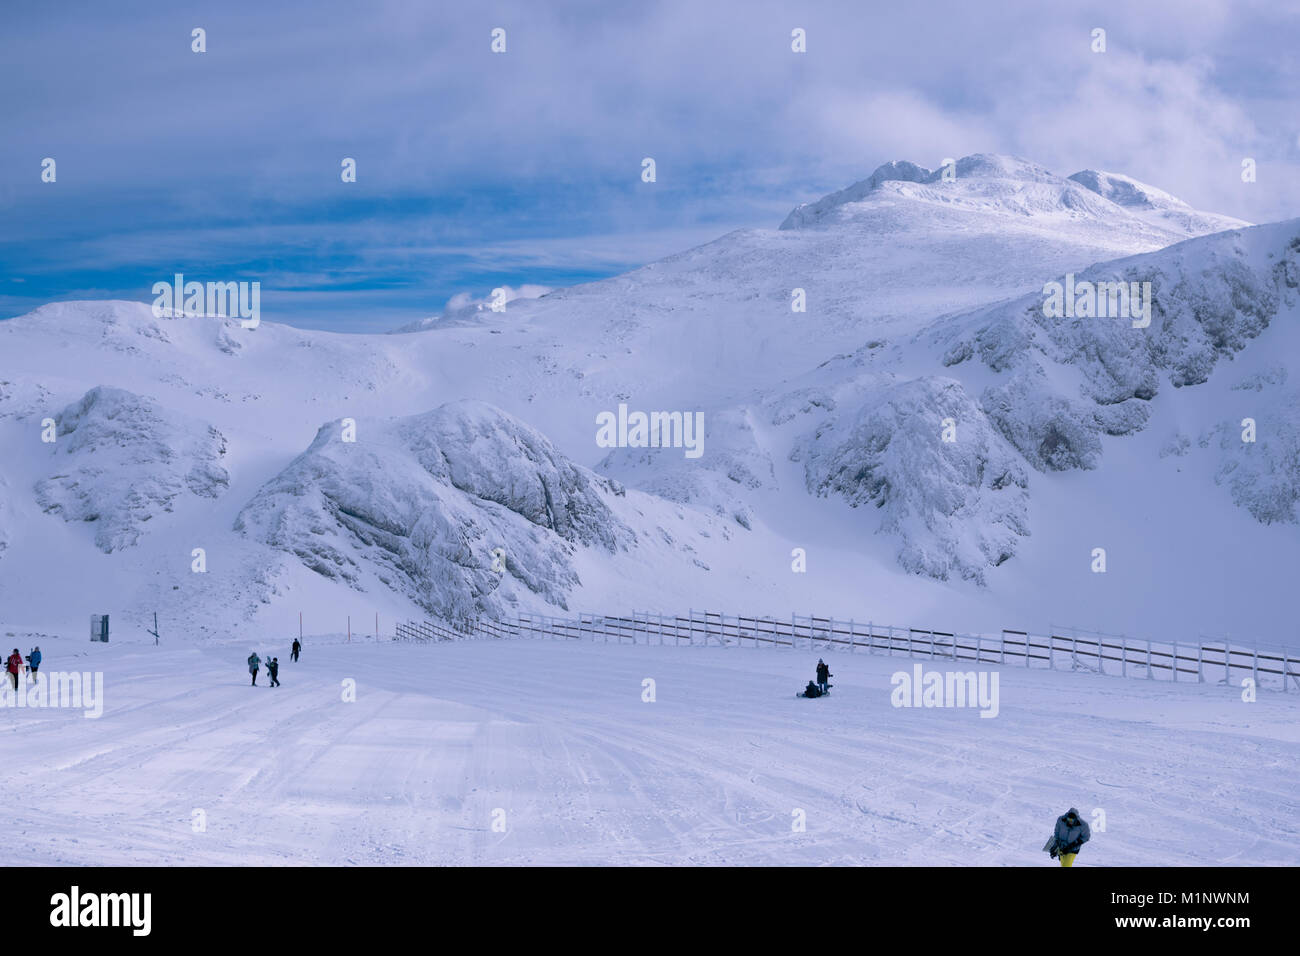 Cloudy morning on a ski resort during winter time - Stock Image